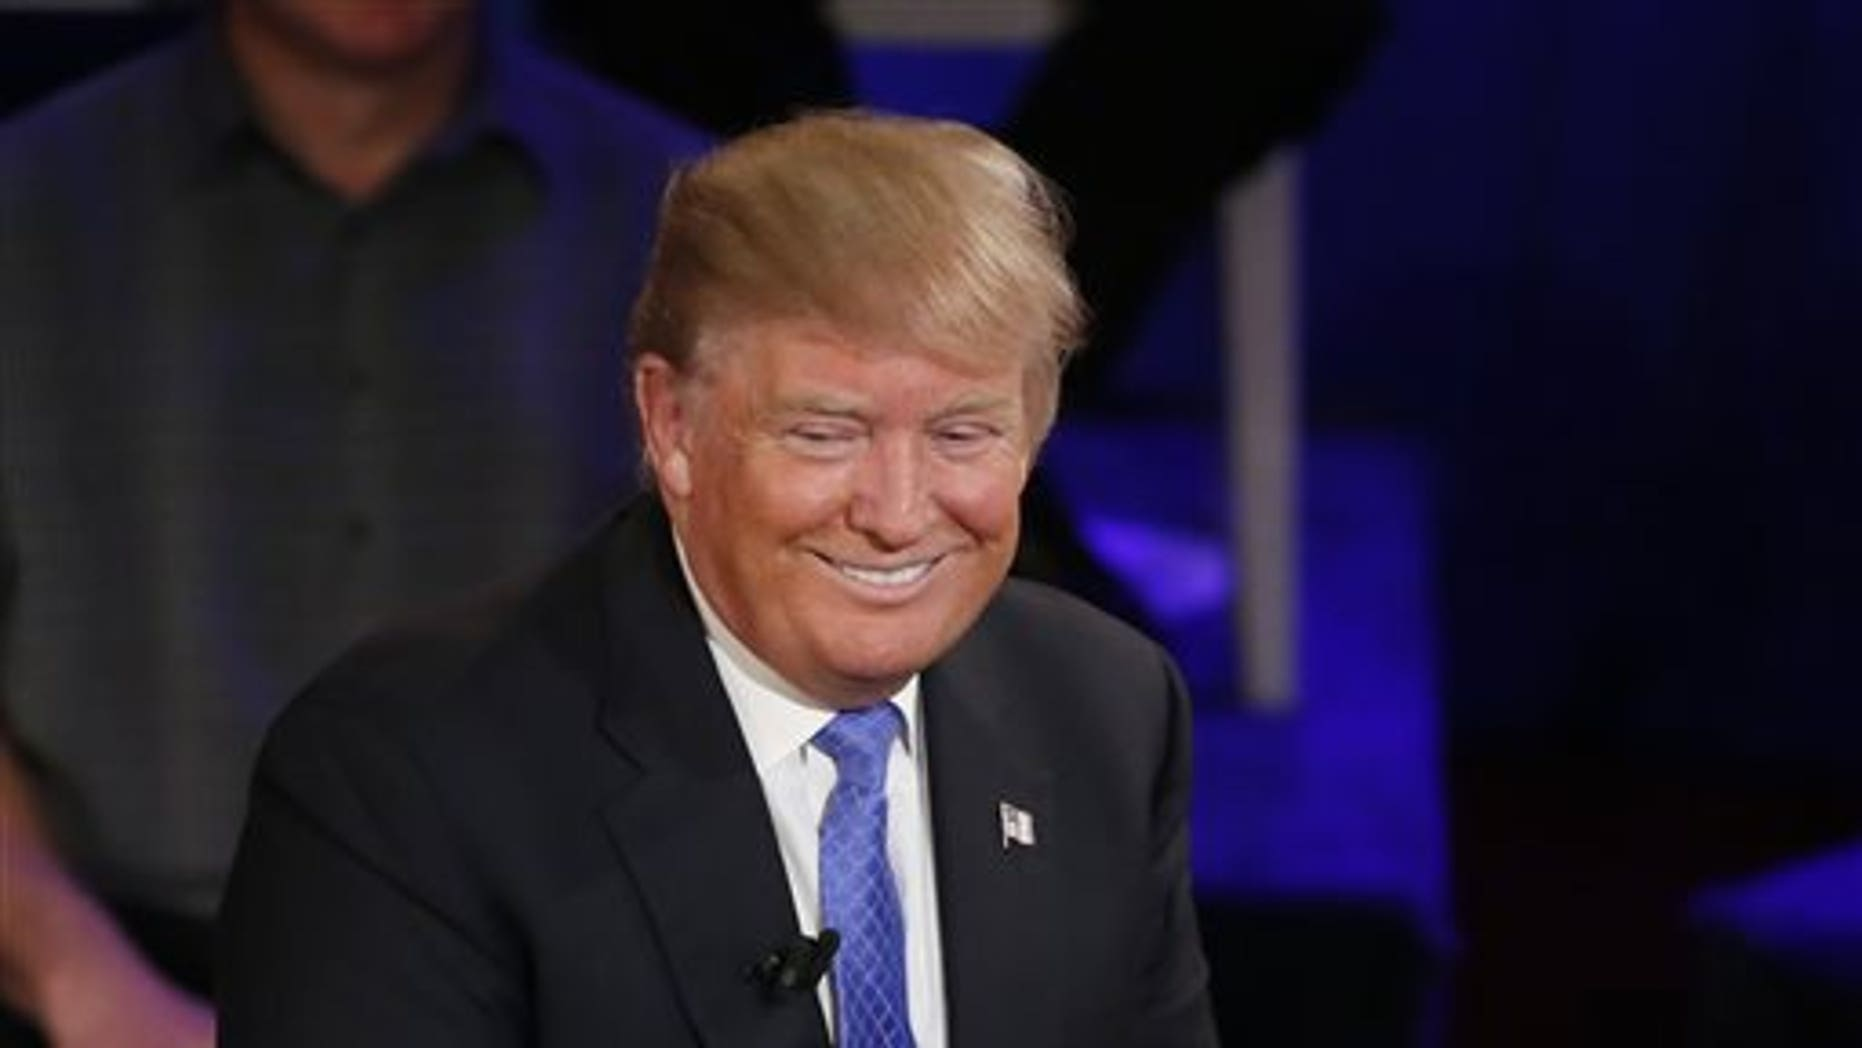 Republican presidential candidate Donald Trump smiles during a town hall in the historic Riverside Theatre on March 29, 2016, in Milwaukee. (AP Photo/Charles Rex Arbogast)